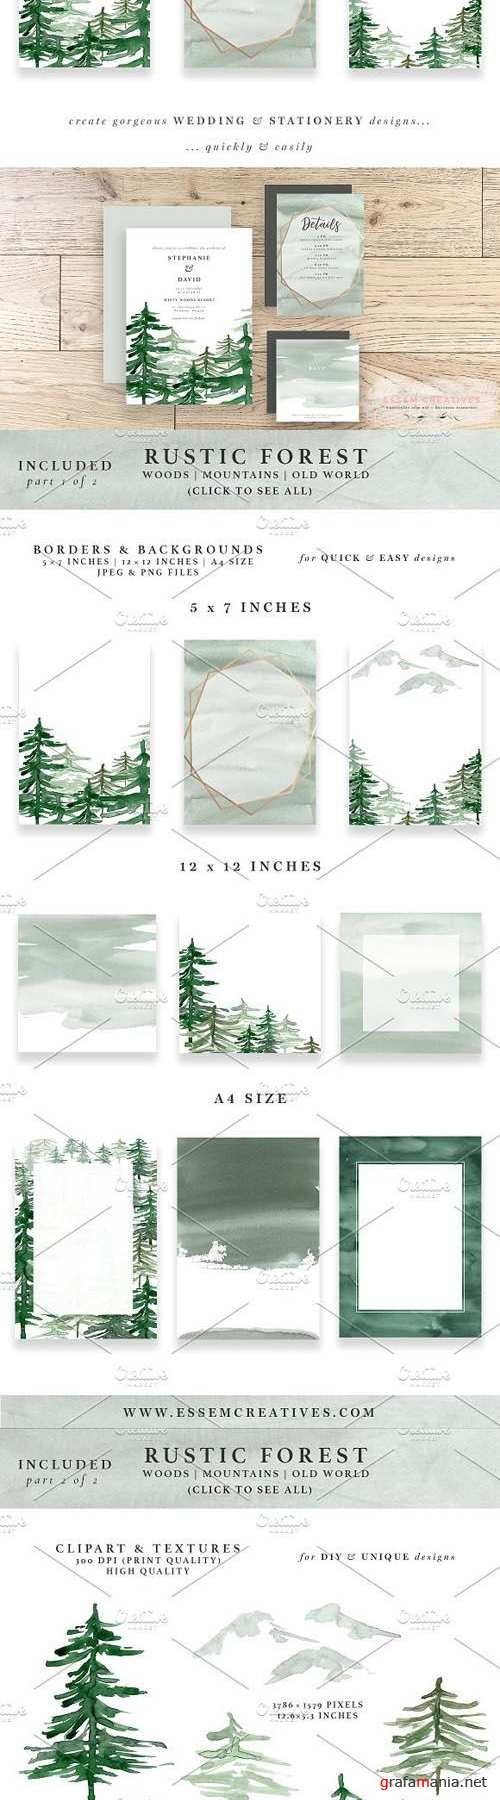 Rustic Forest Watercolor Backgrounds 1694418